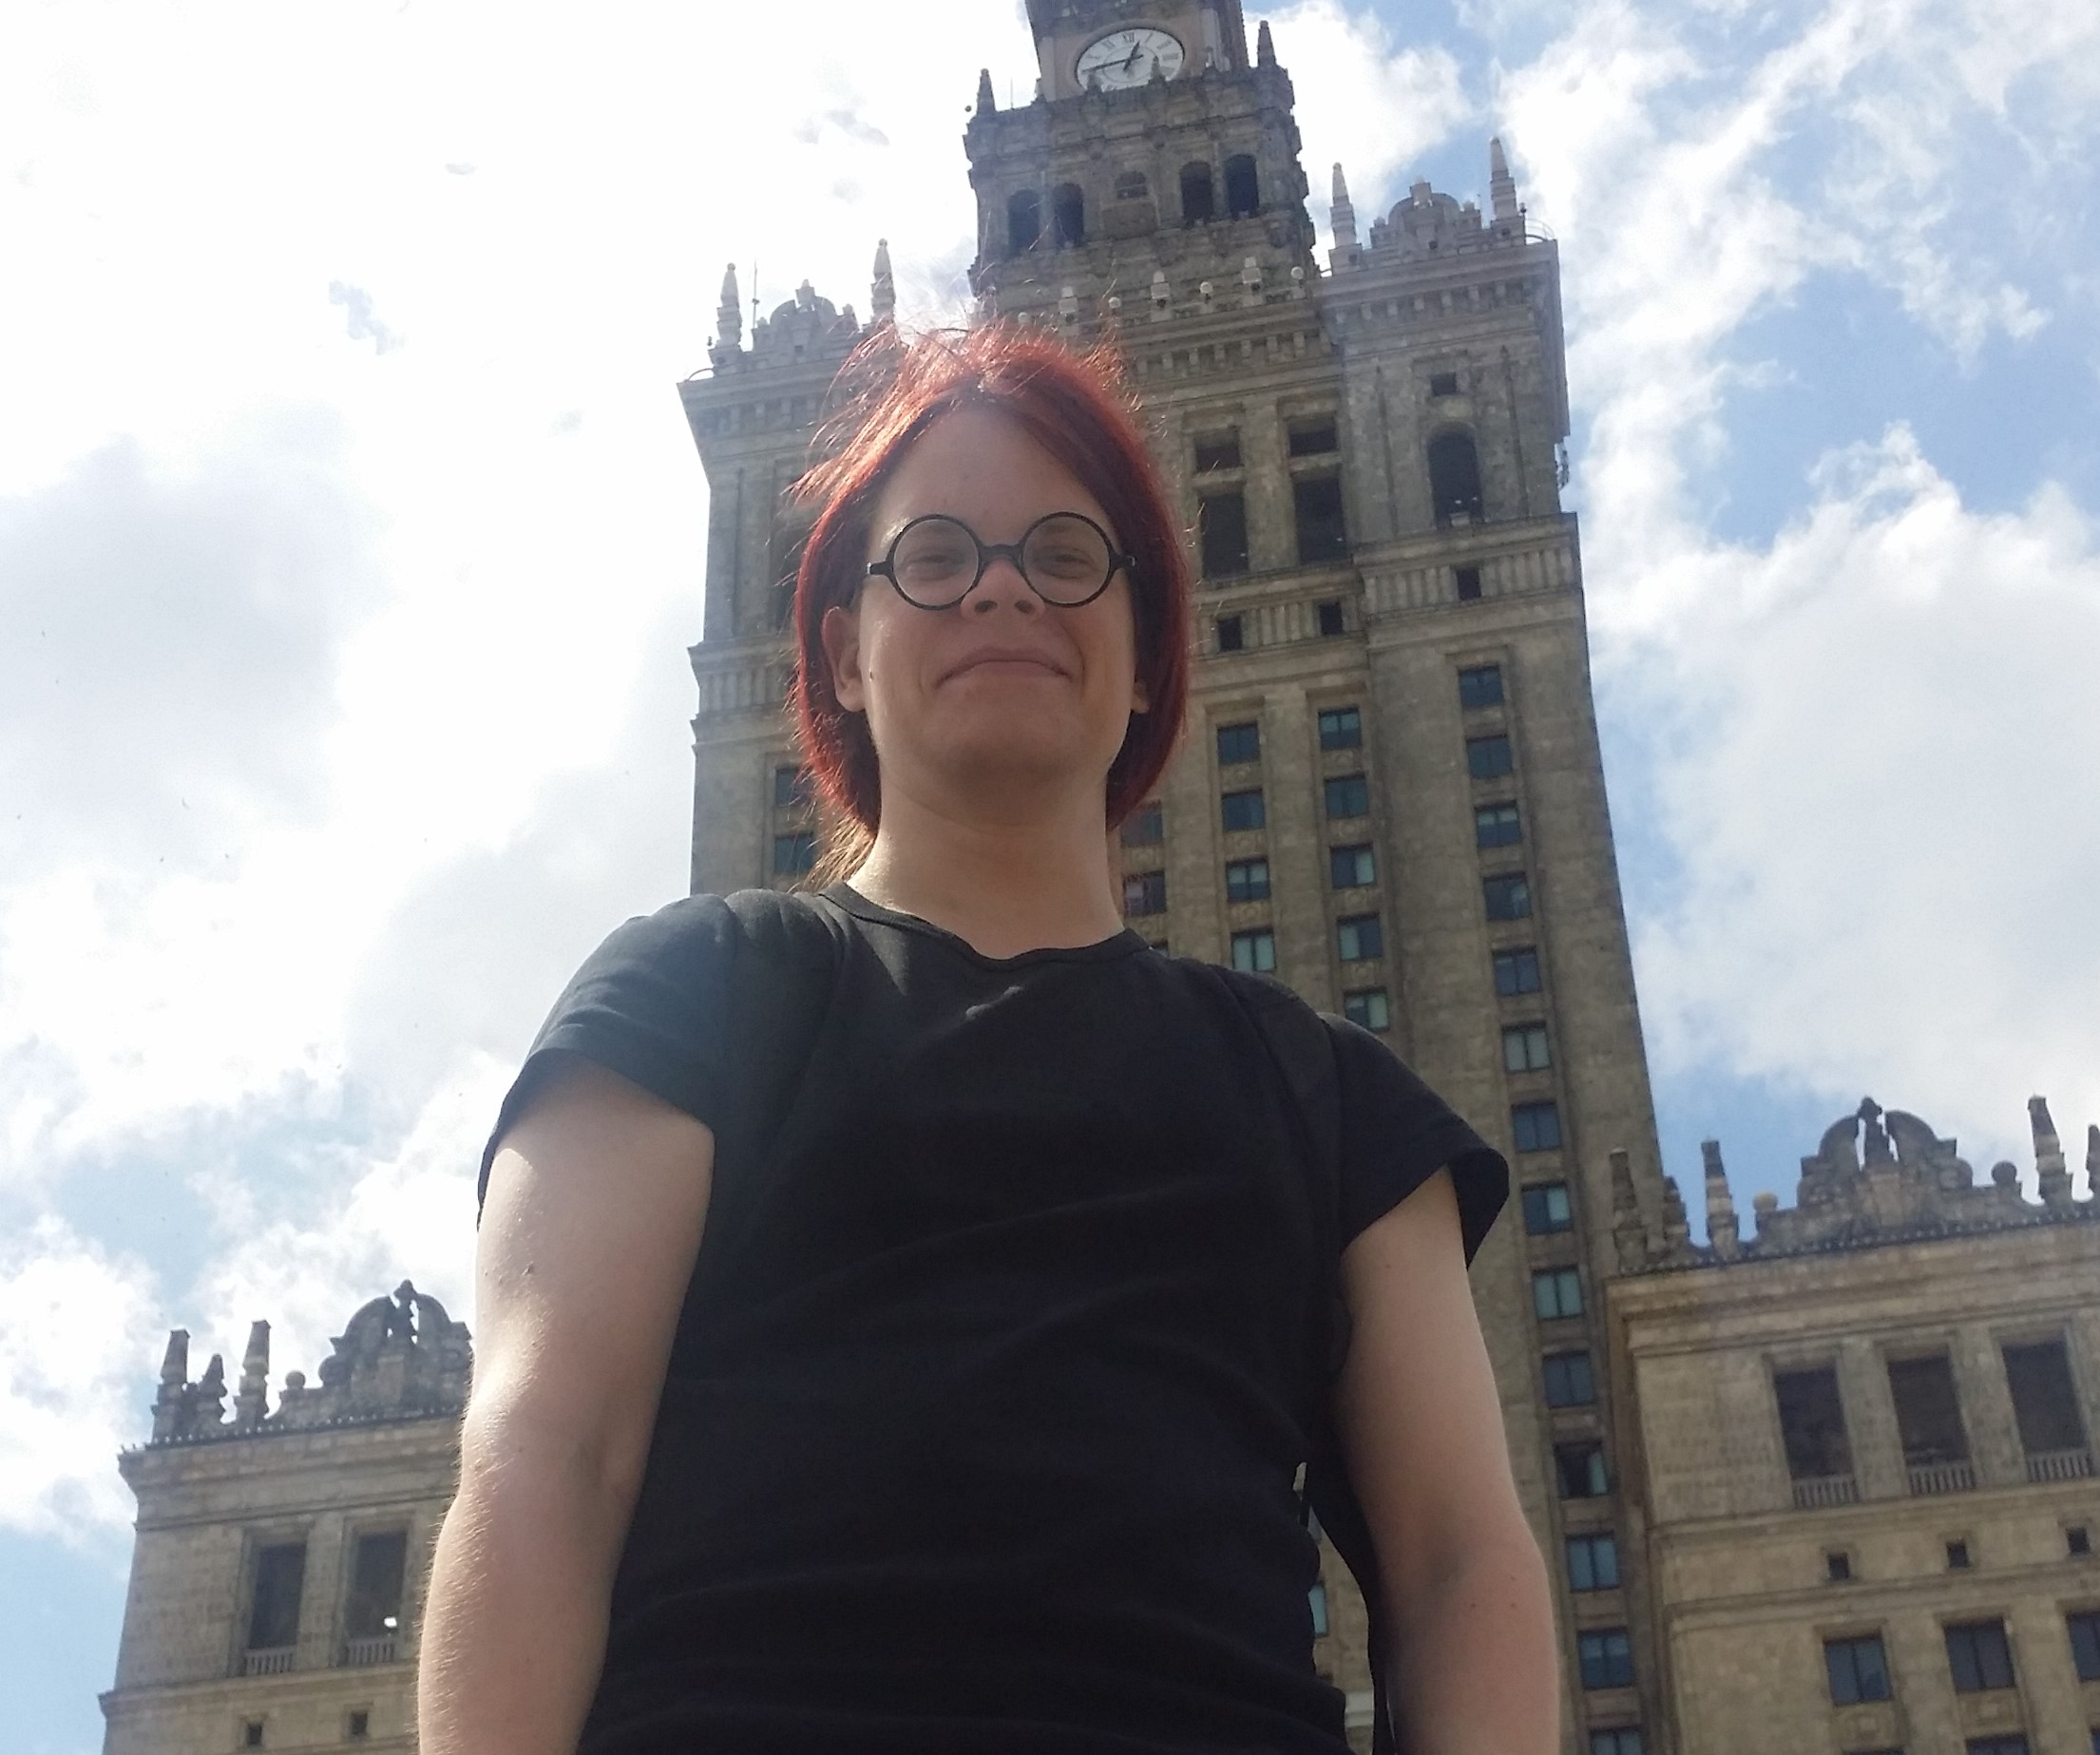 Person in front of a high, old building.